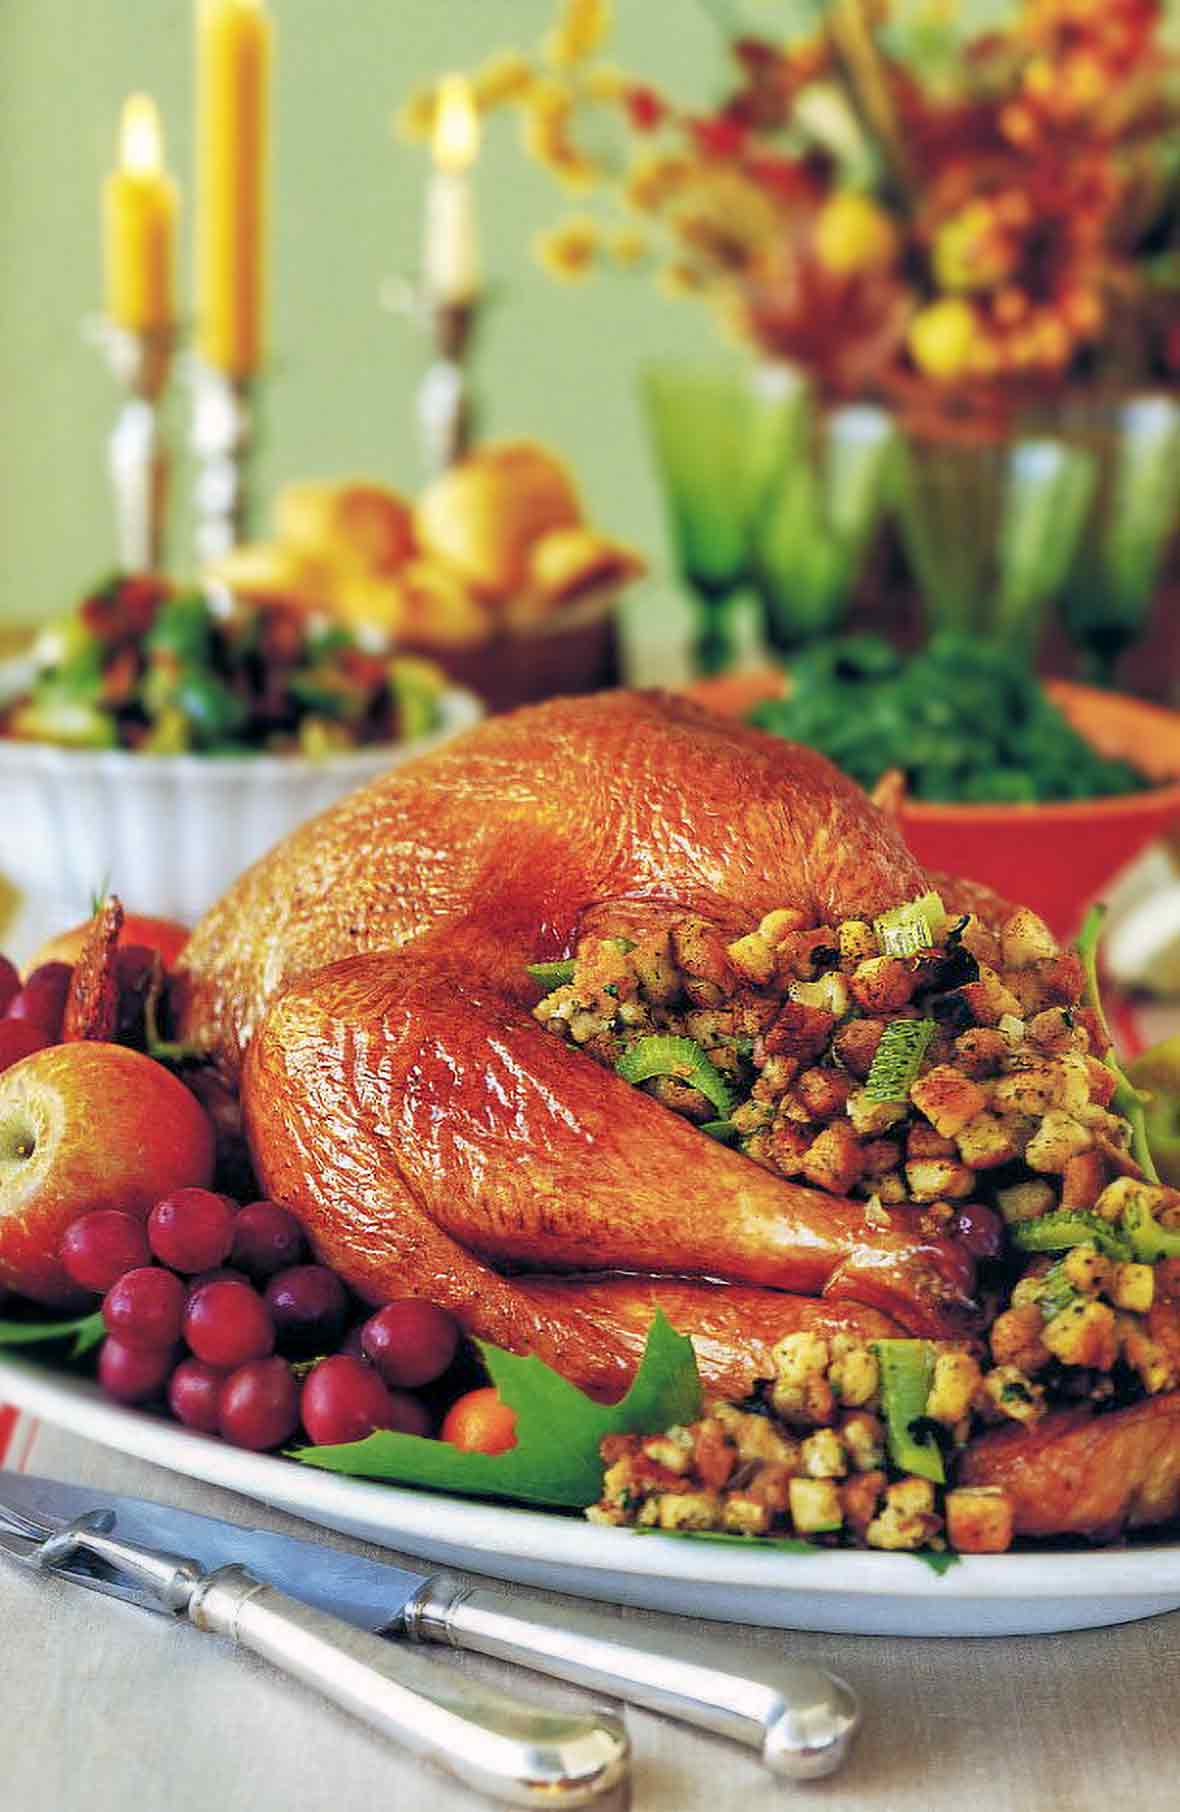 Thanksgiving table with a Roast turkey with stuffing and vegetables on a platter